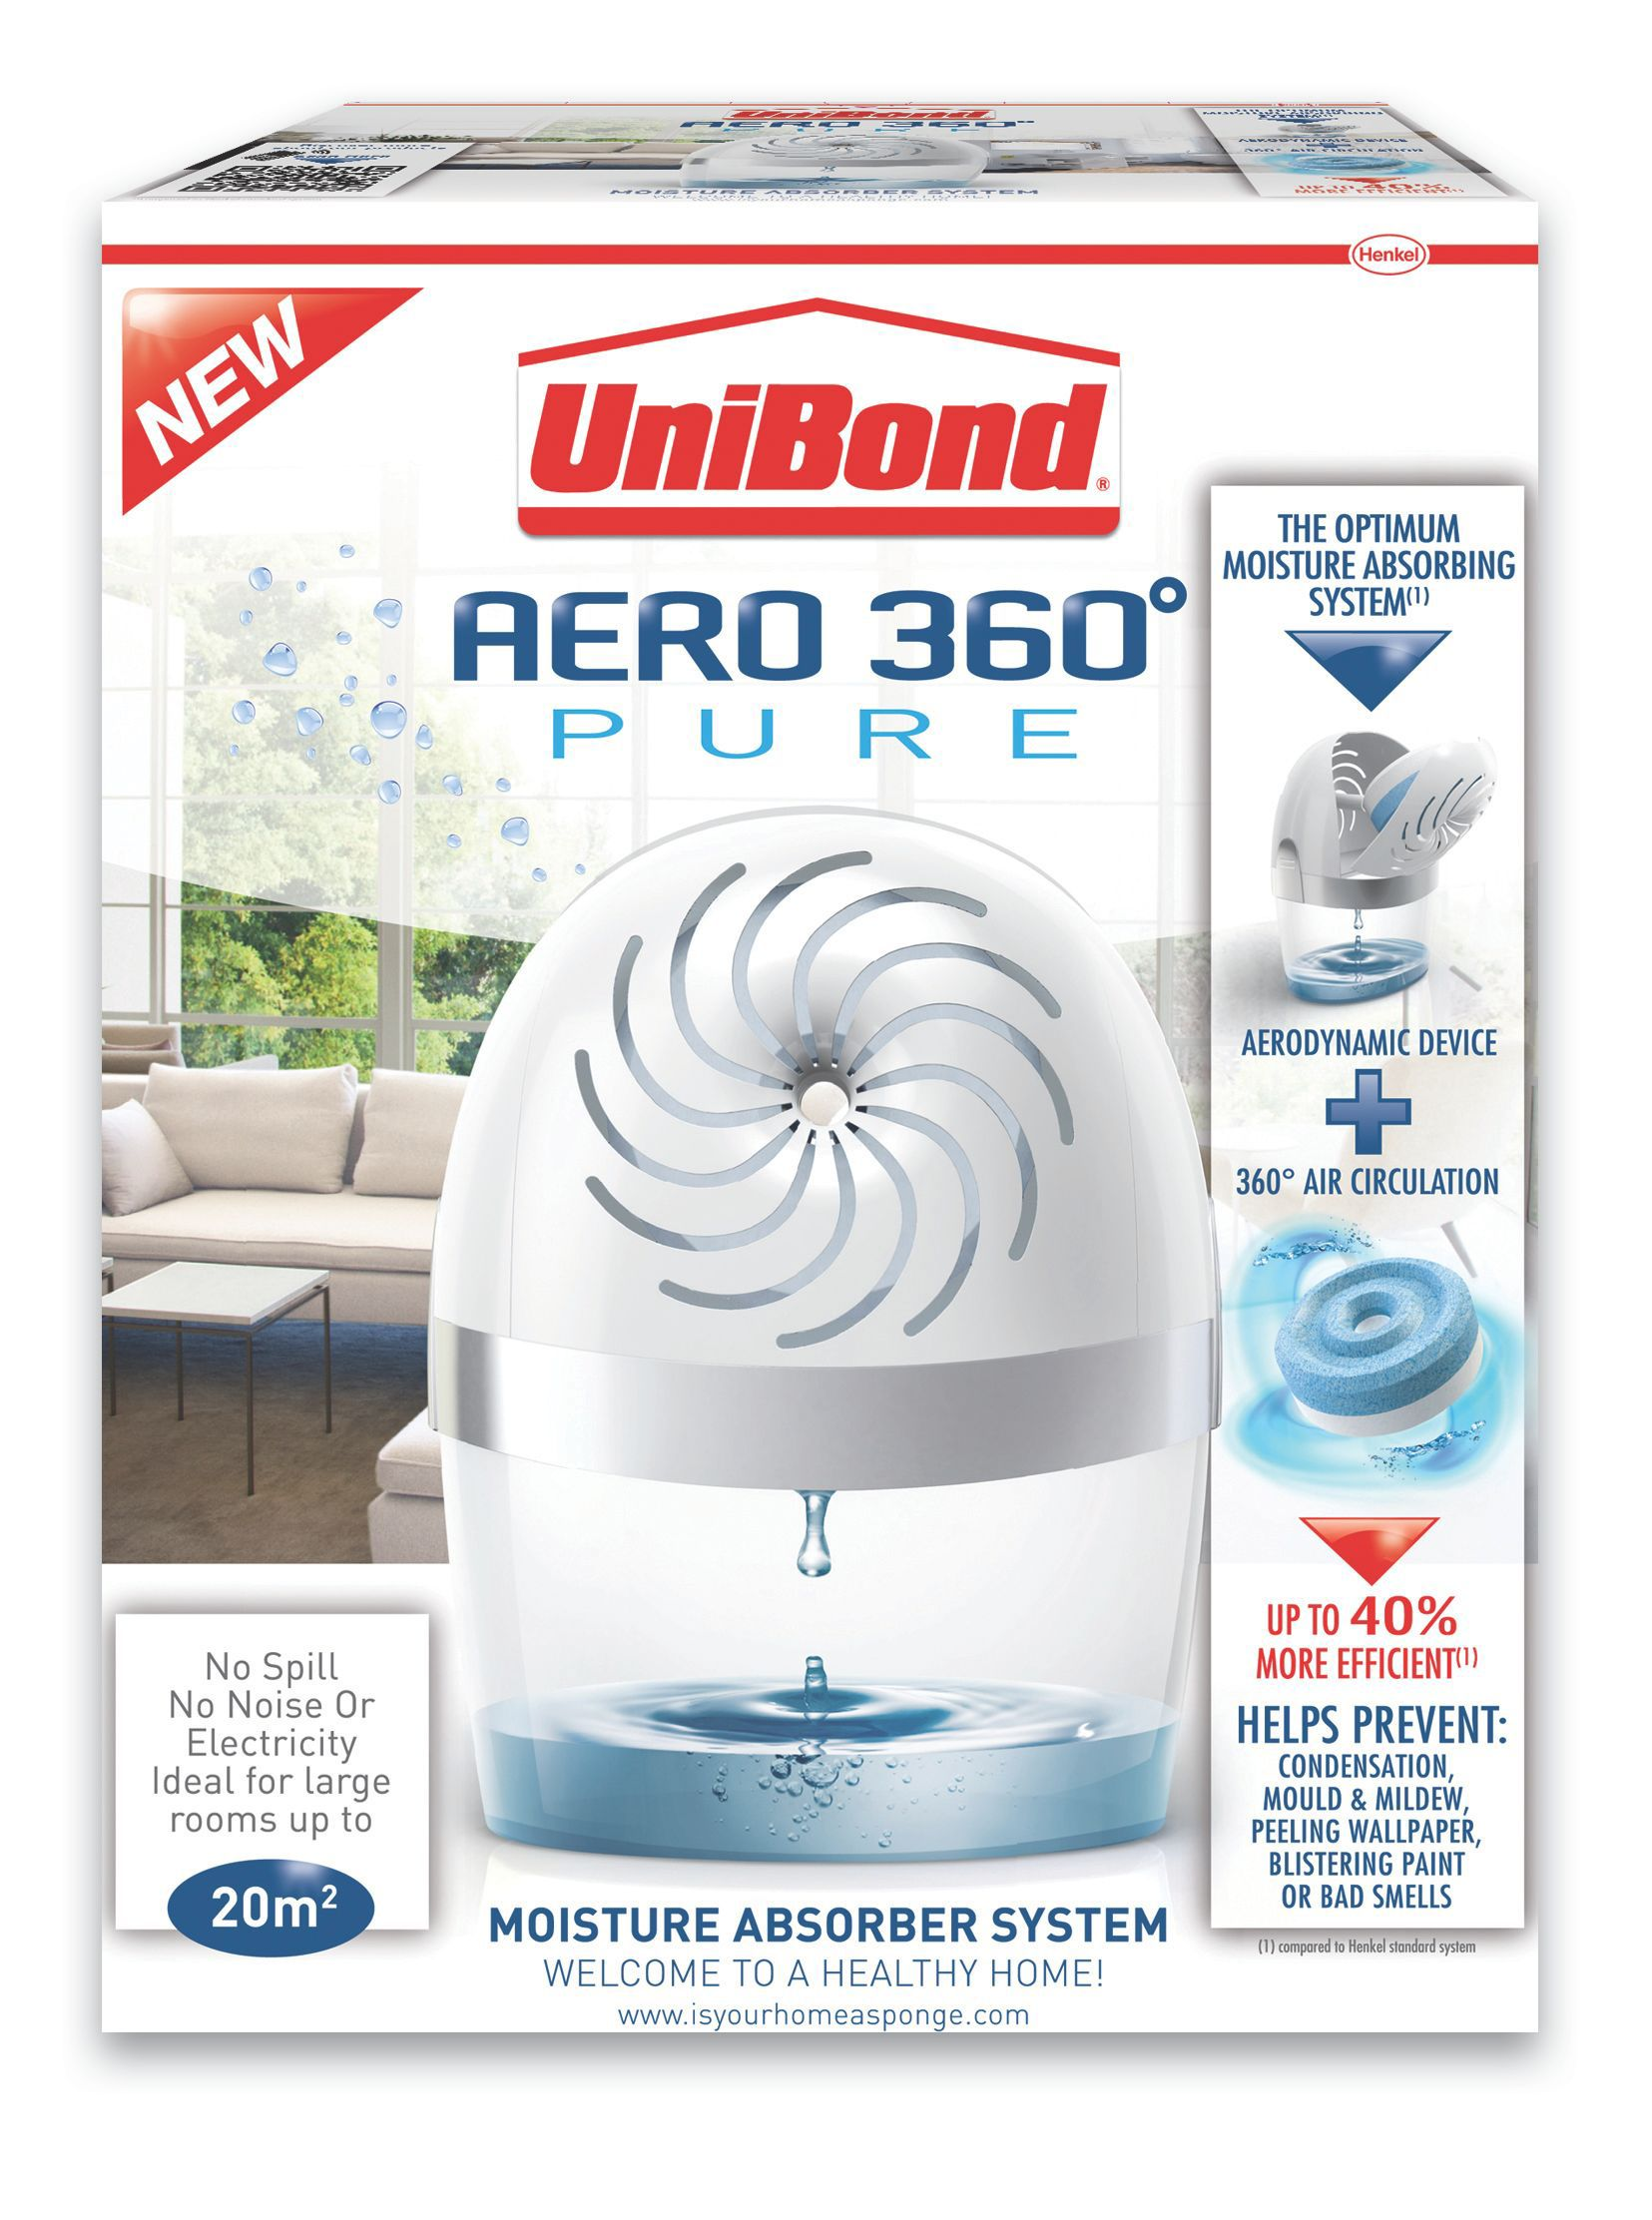 Unibond Aero 360 Moisture Absorber Departments Diy At B Amp Q